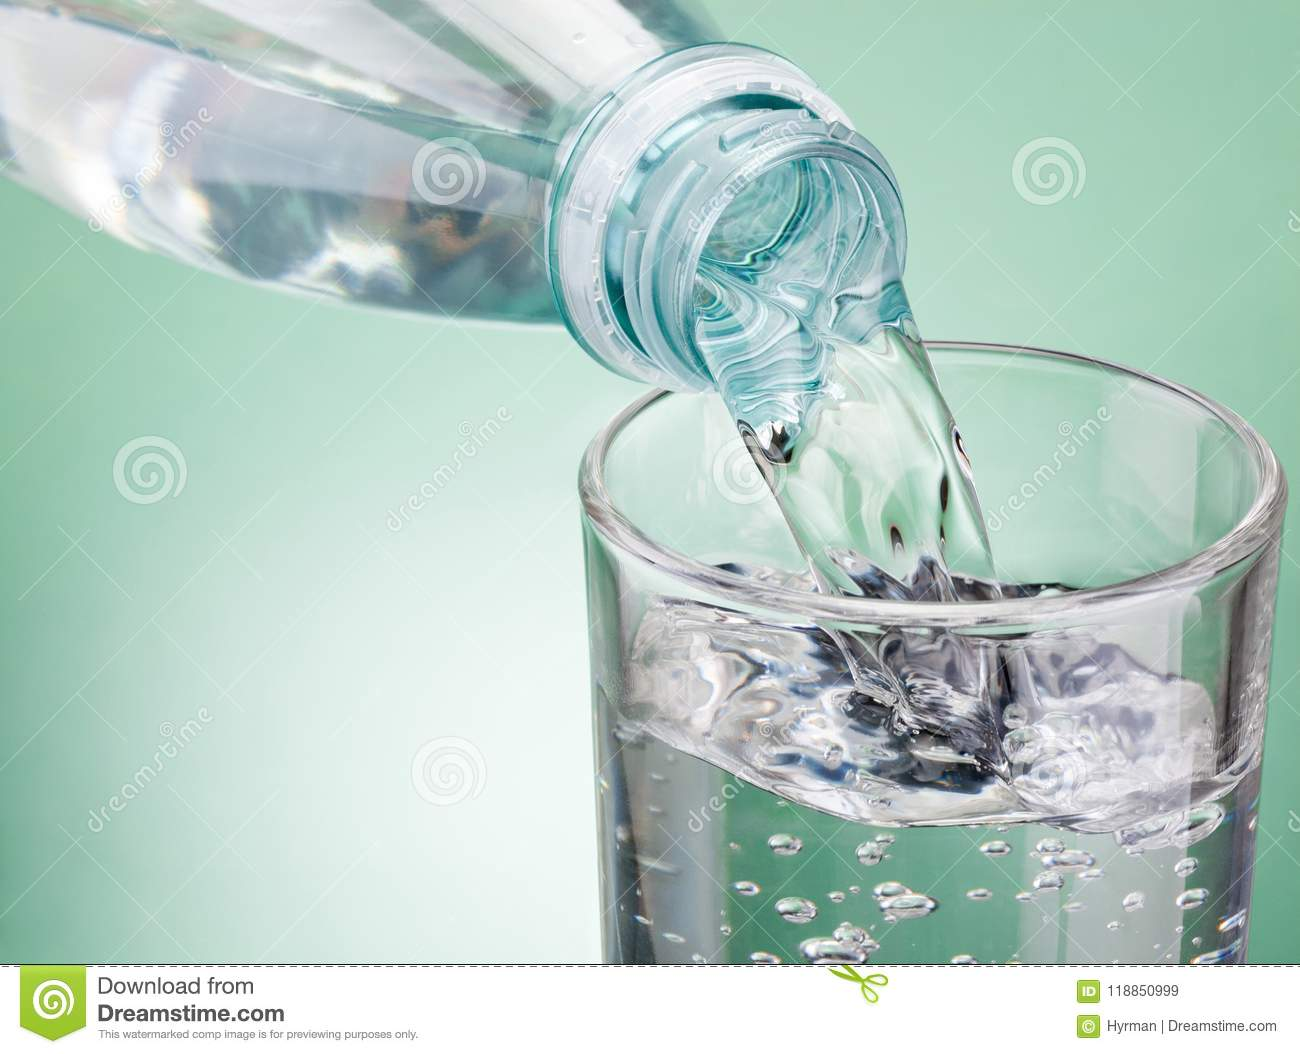 Pouring water from bottle into glass on green background